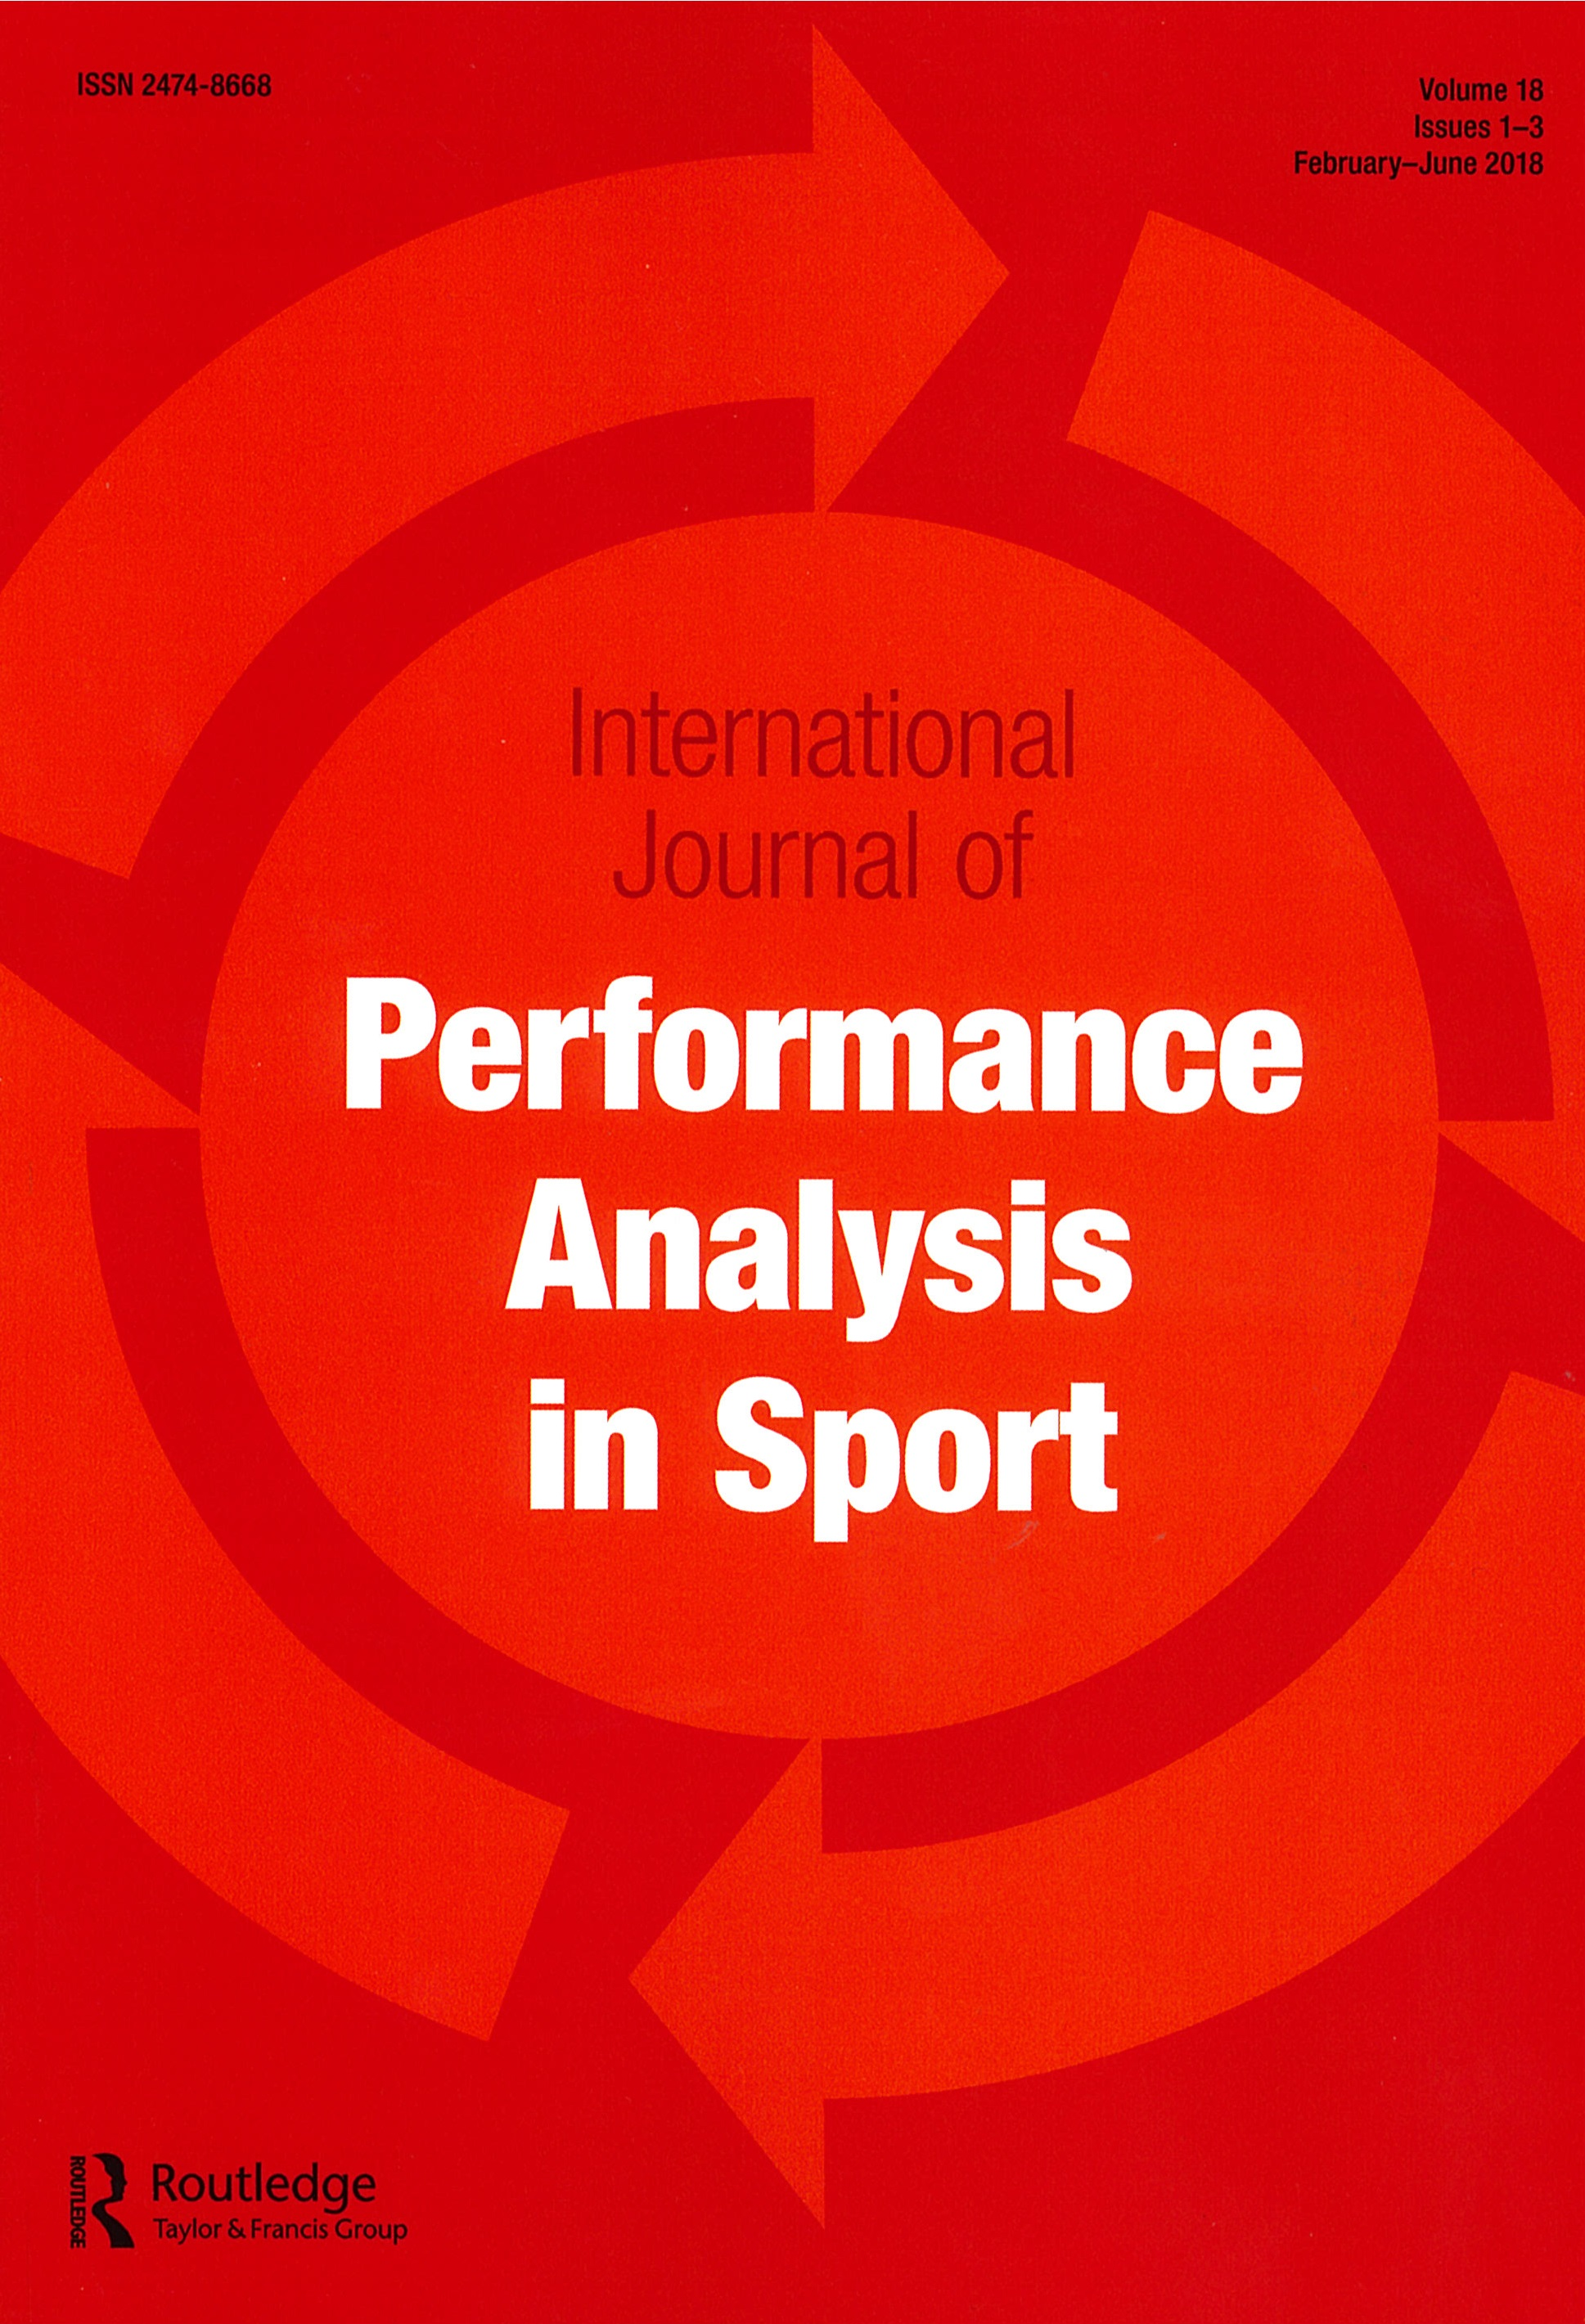 International Journal of Performance Analysis in Sport